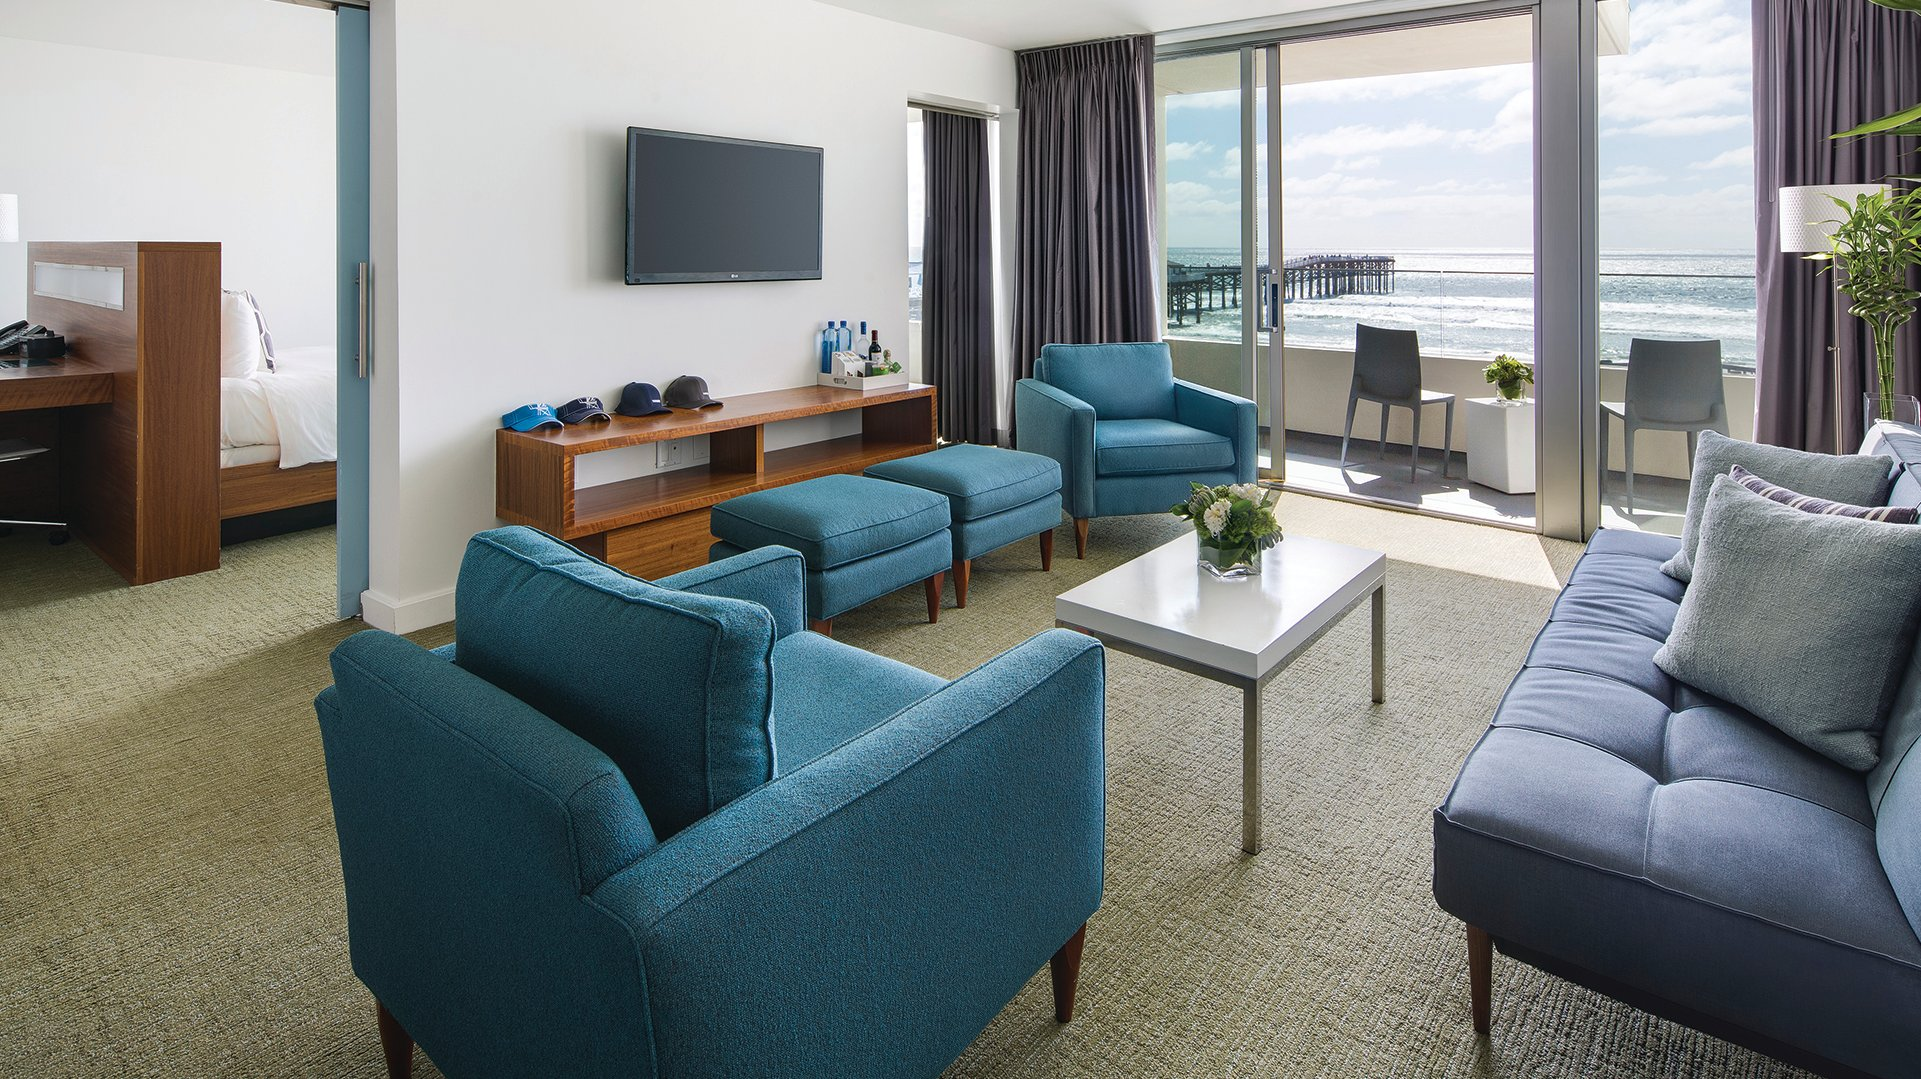 Sweet Suite at Tower 23 hotel in San Diego's Pacific Beach